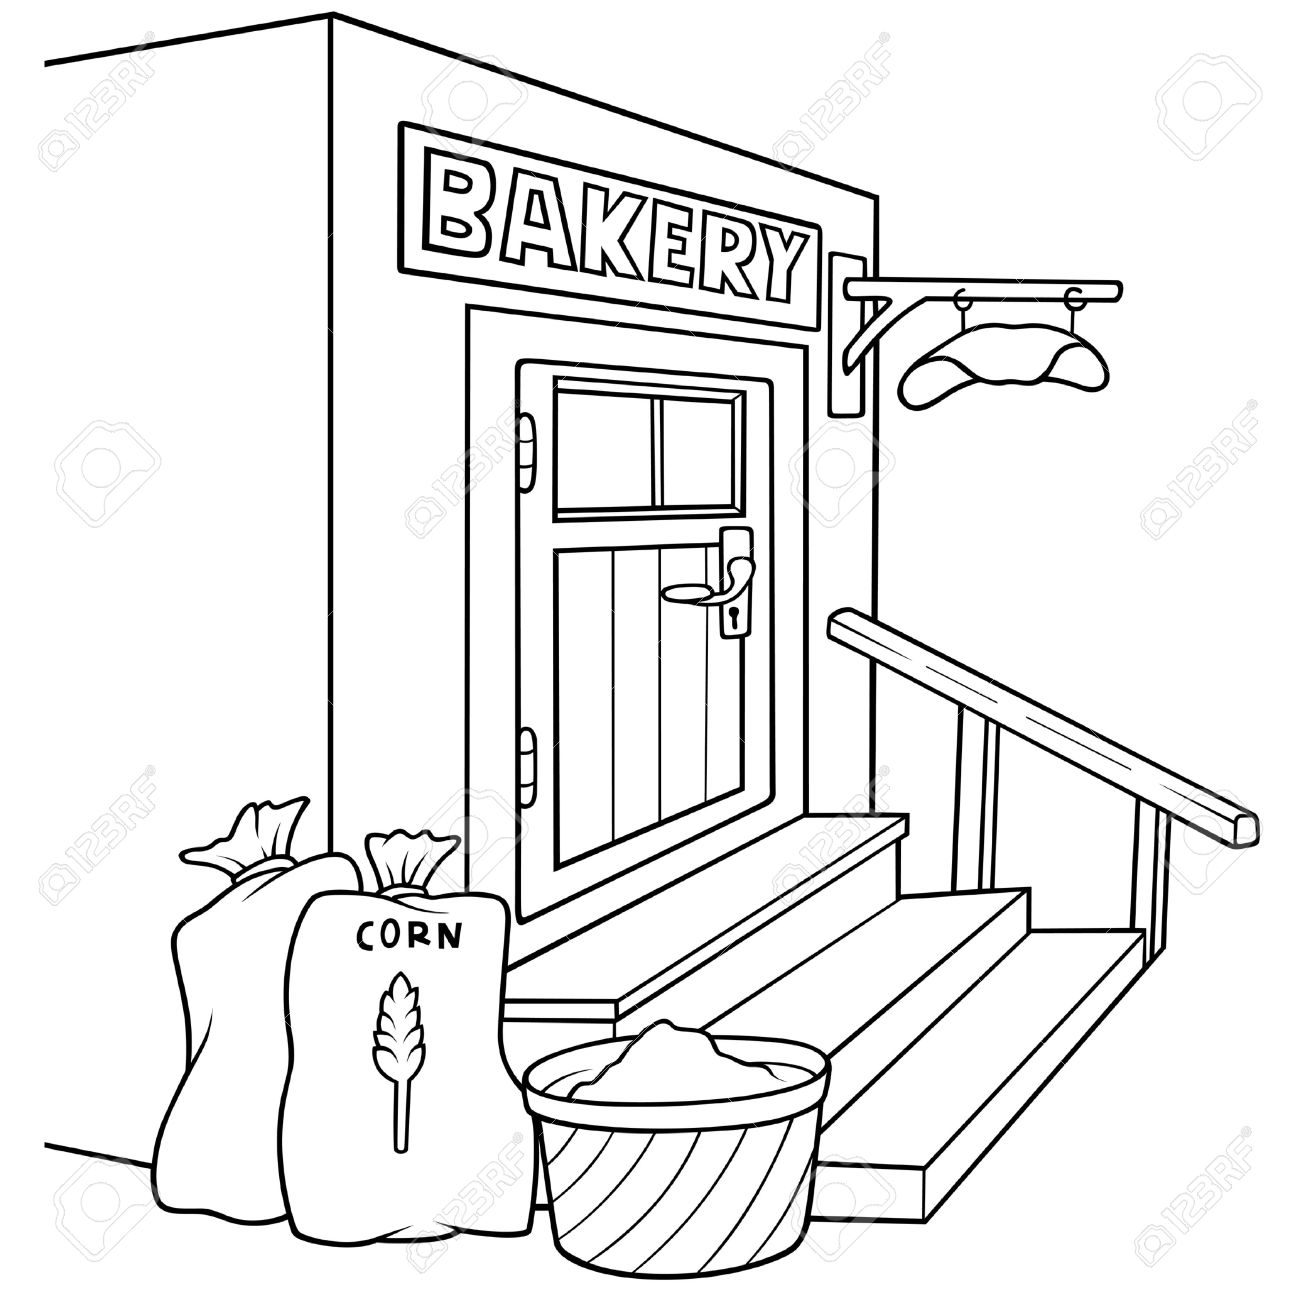 Bakery black and white. Baker clipart line drawing